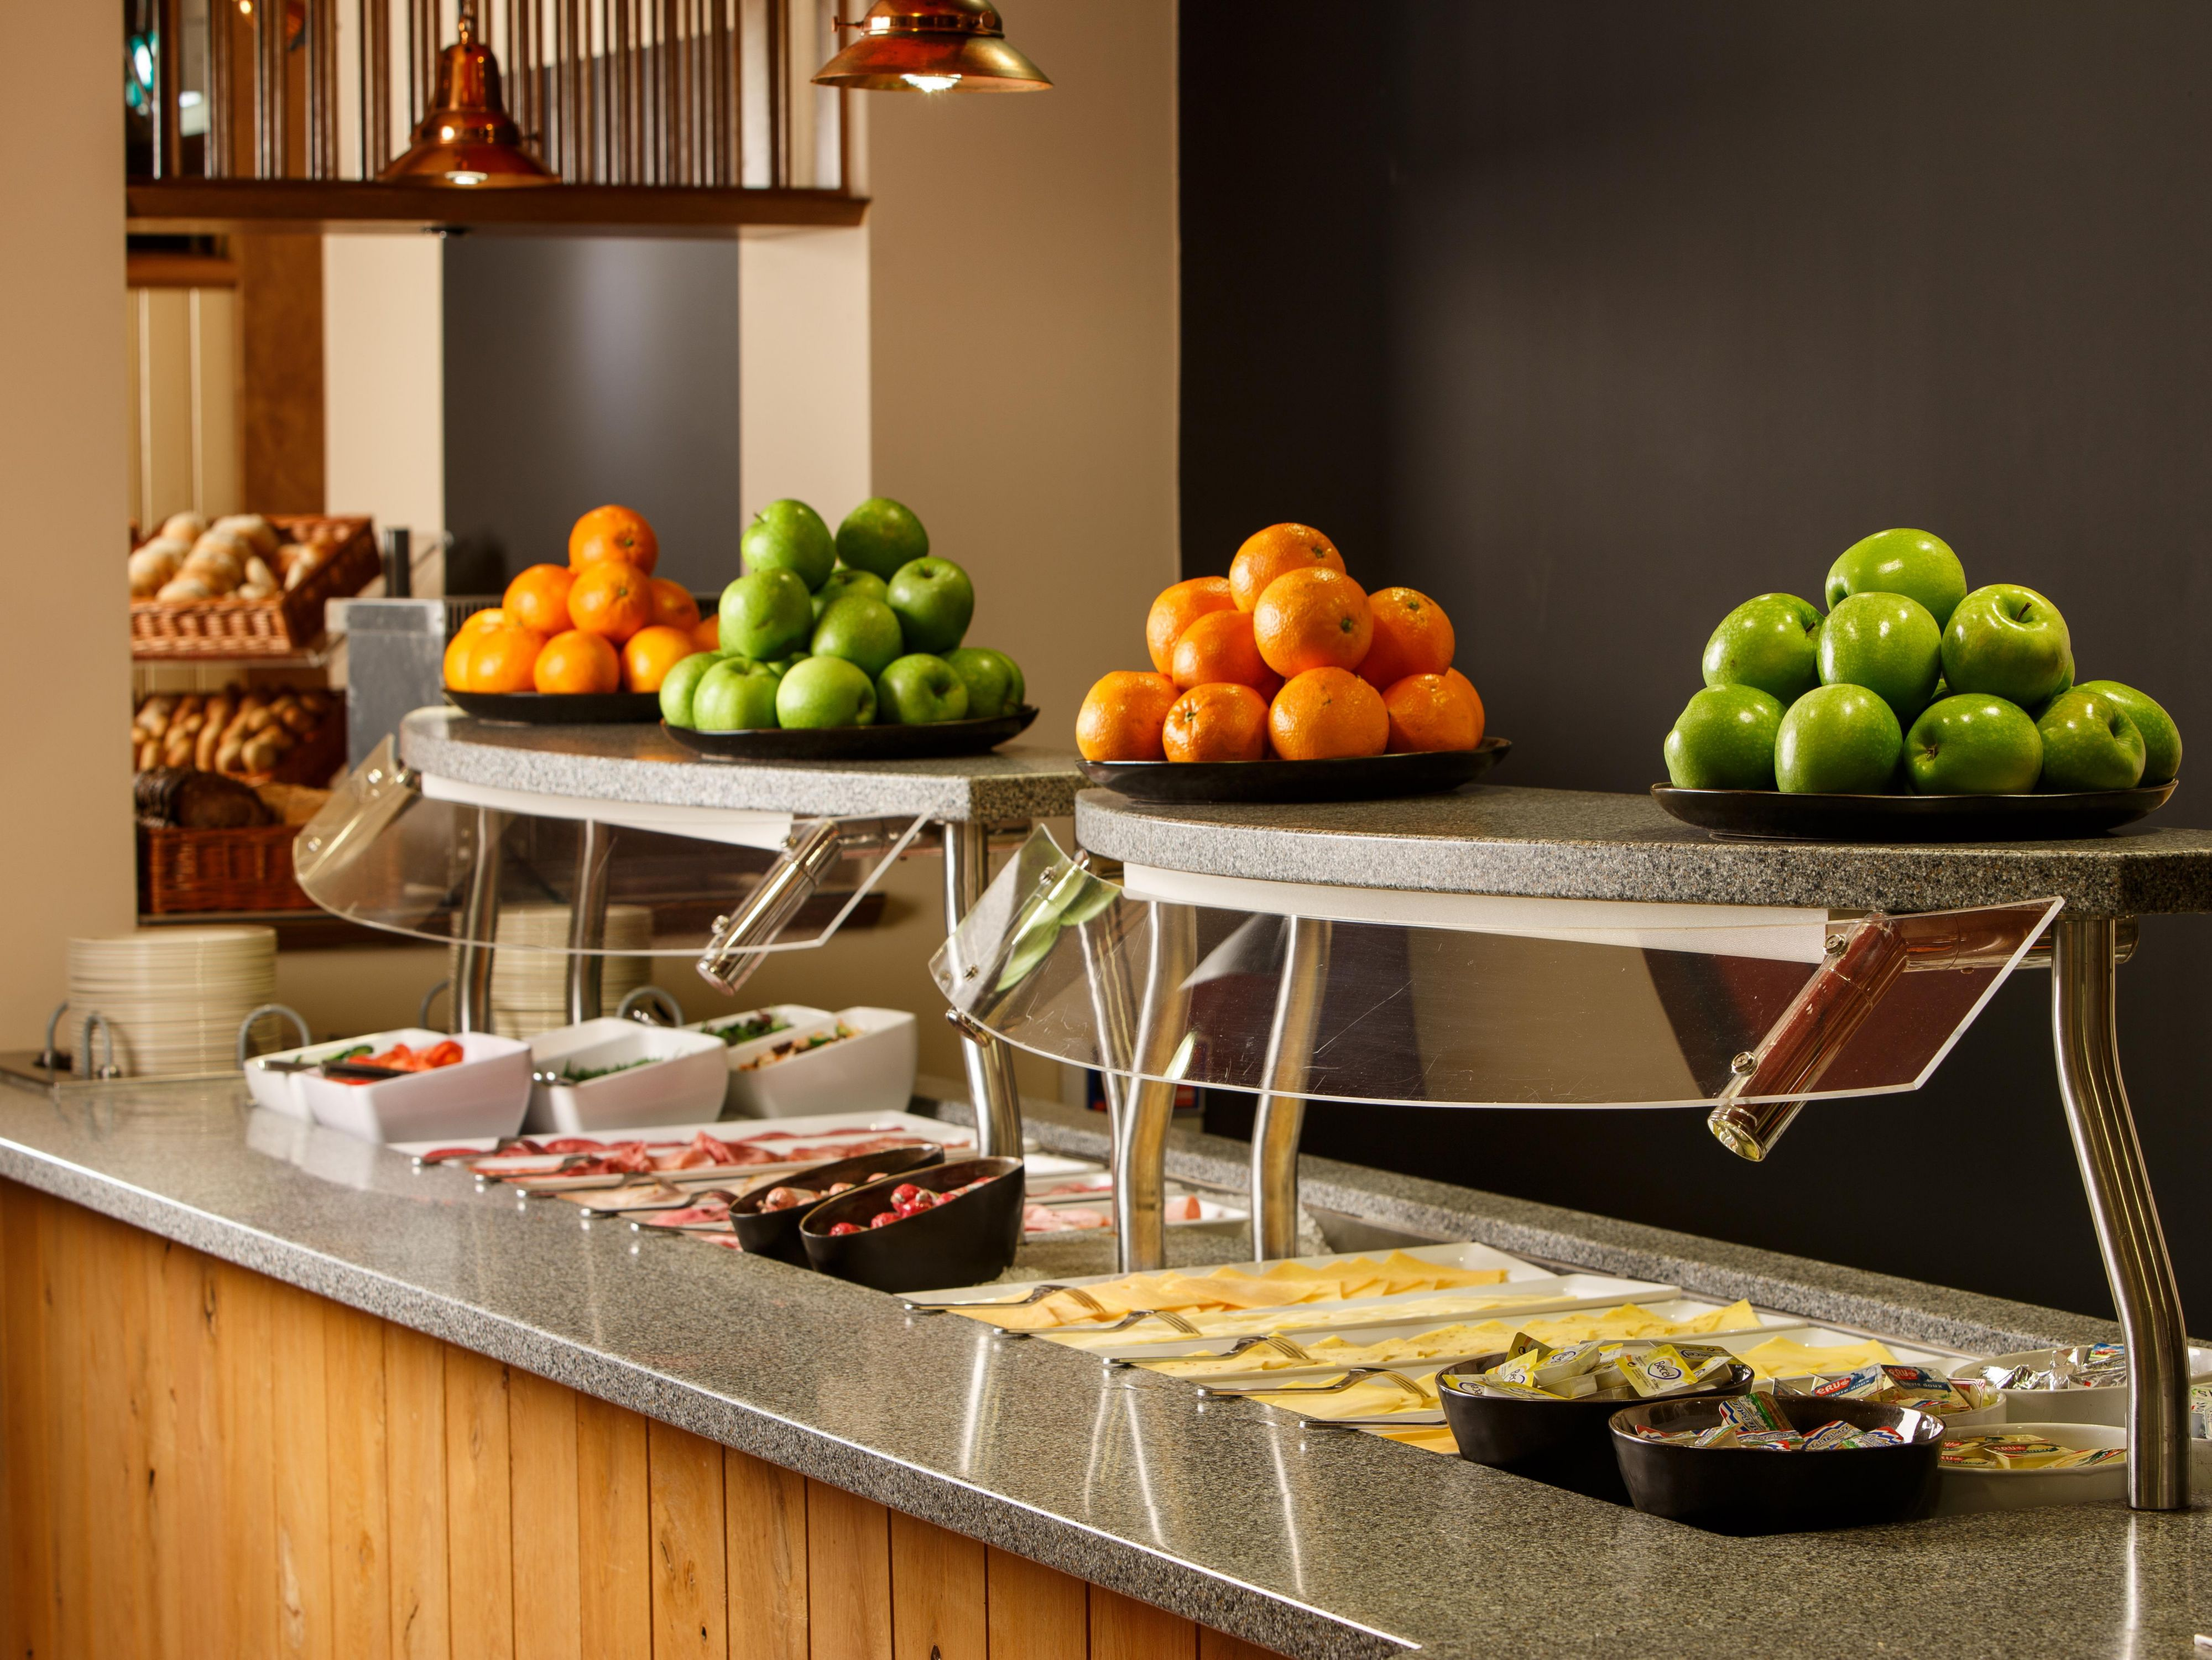 Our Breakfast Buffet is available every morning